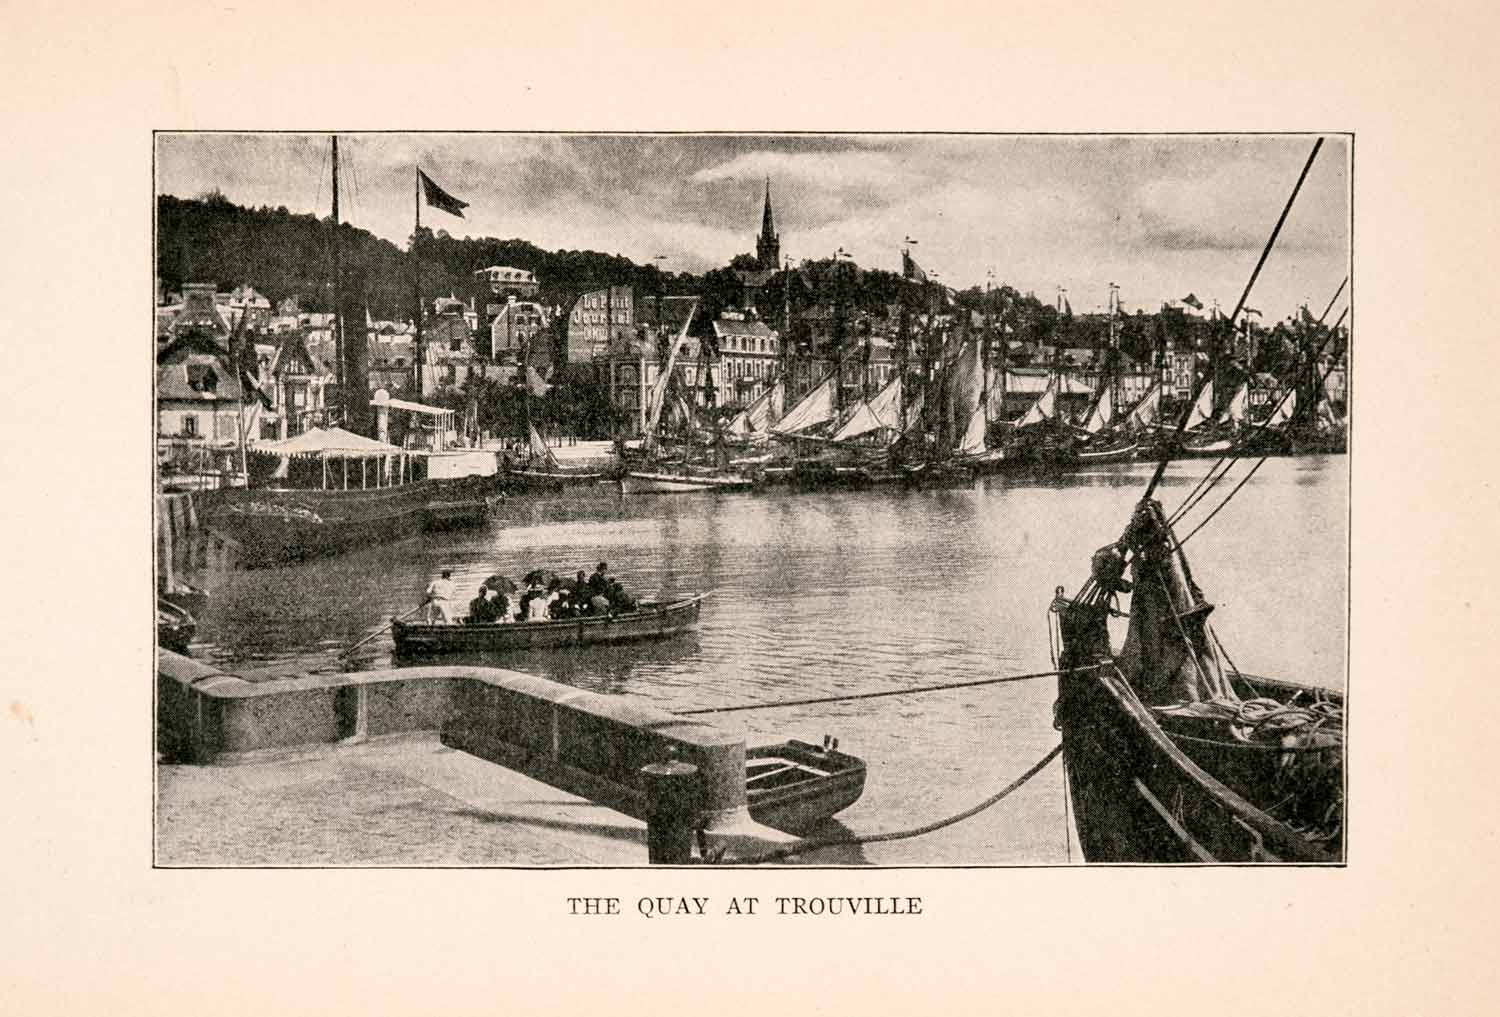 1905 Print Quay Trouville France Ships Seaport Water Homes Businesses XGDA1